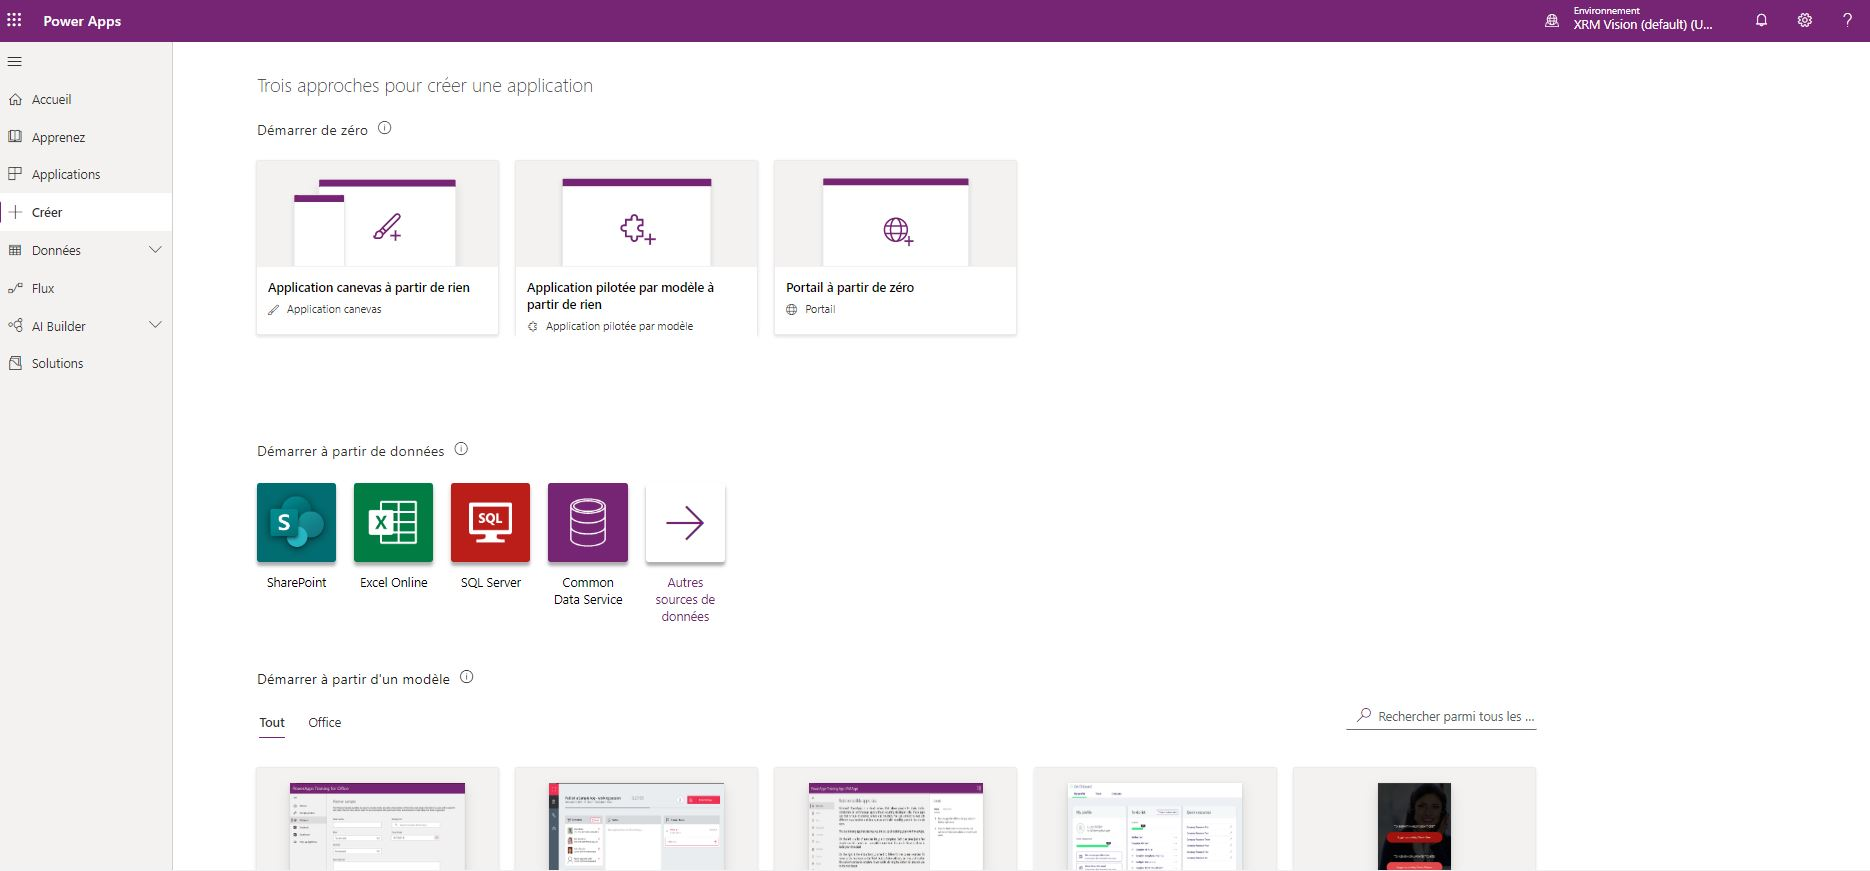 Create a business application using Microsoft Power Apps